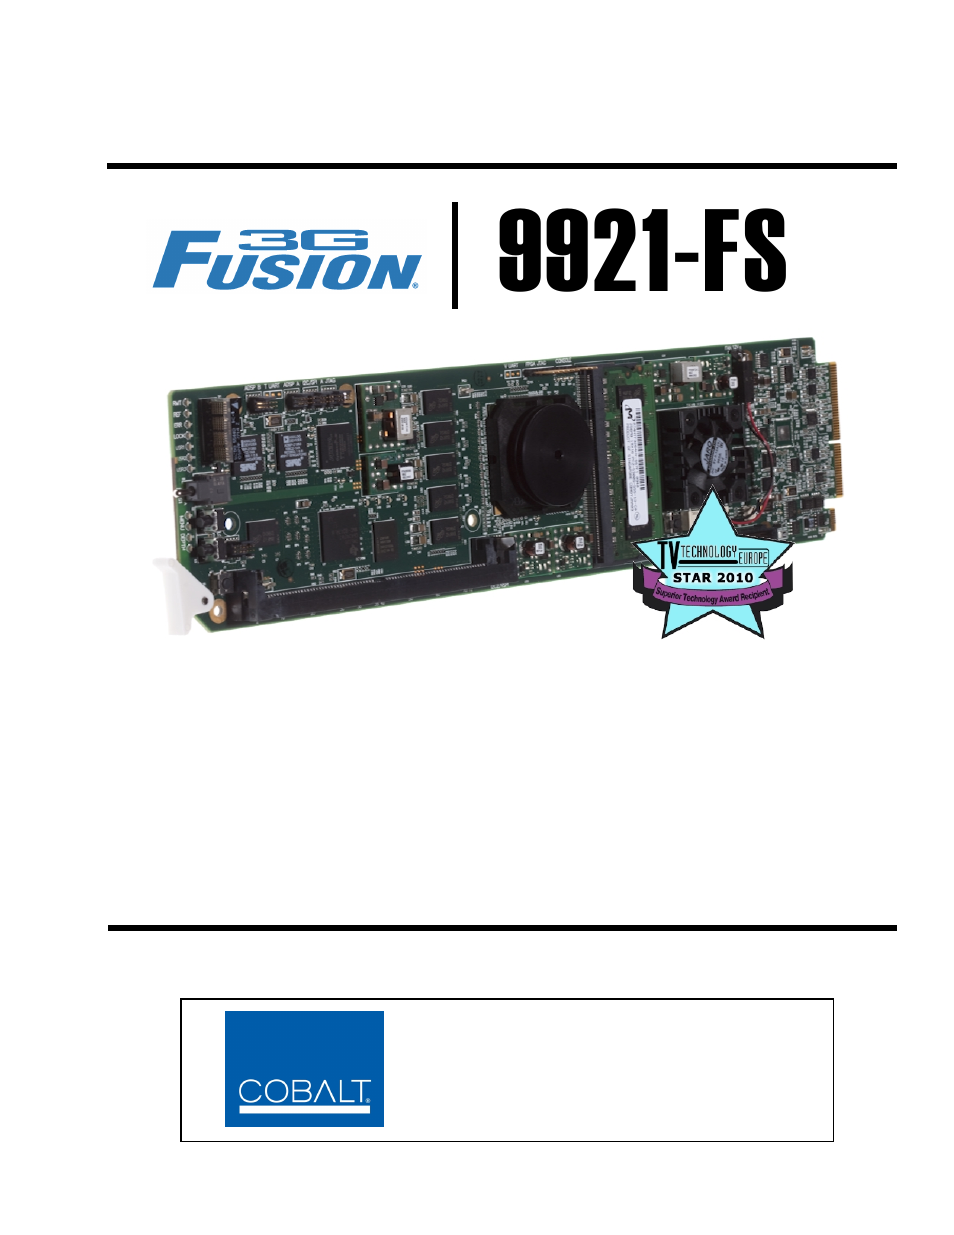 Cobalt Digital FUSION 3G 9921-FS 3G_HD_SD Frame Sync User Manual ...